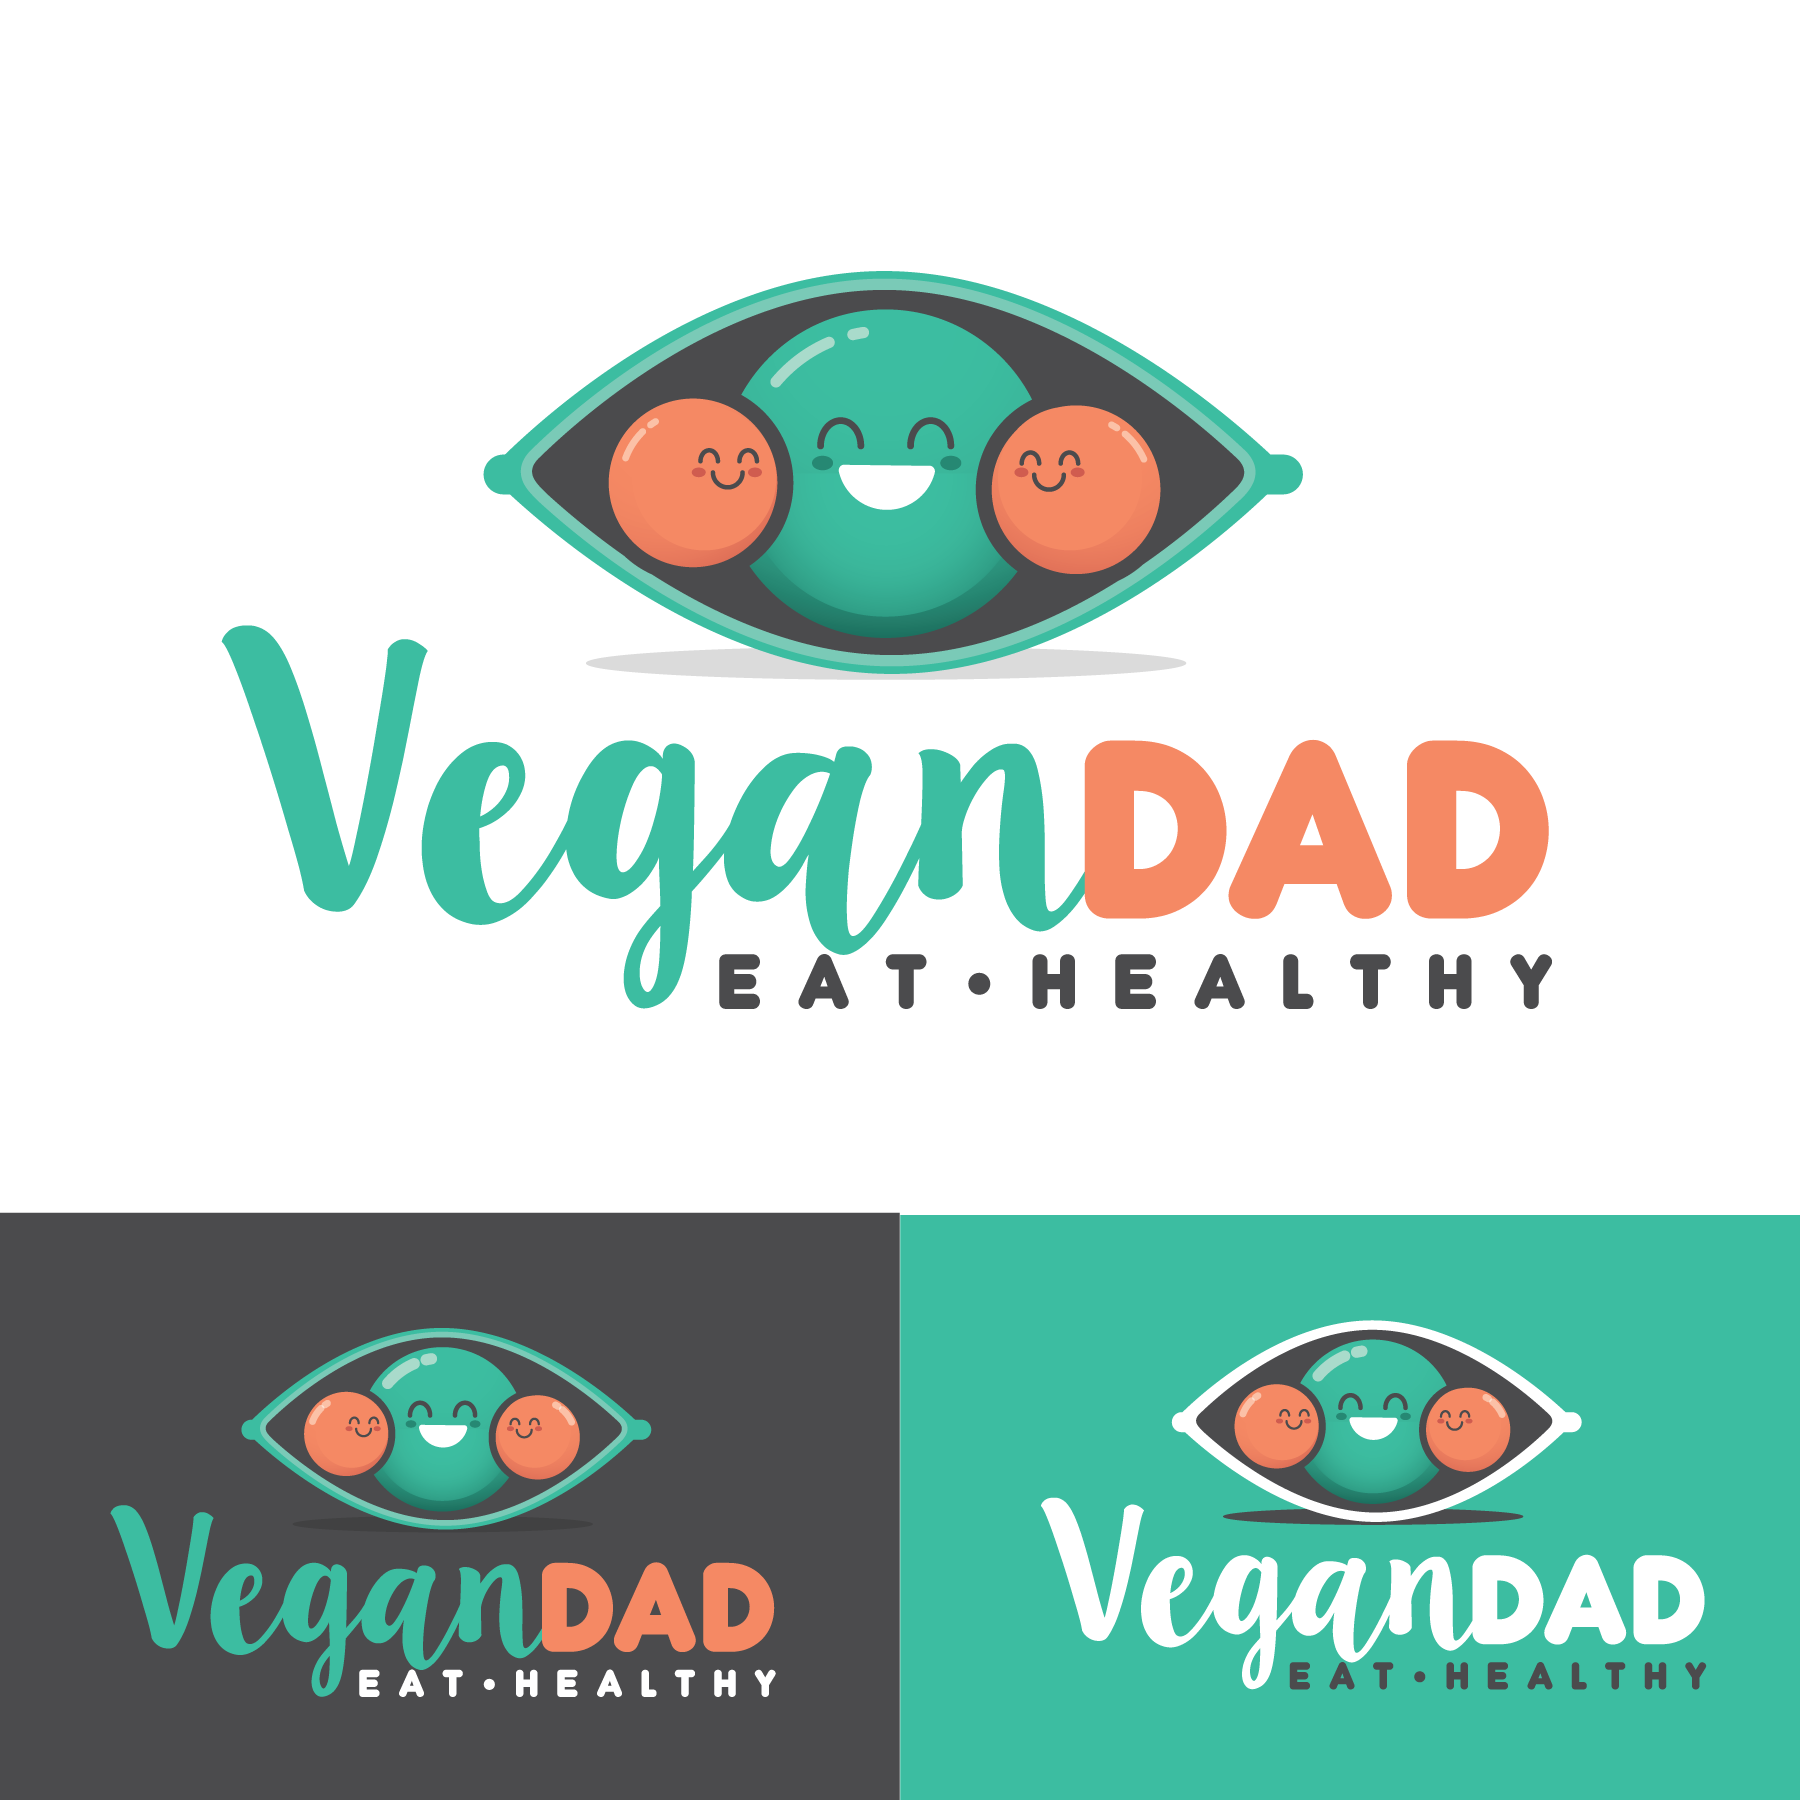 Abstract mascots for a health food blog